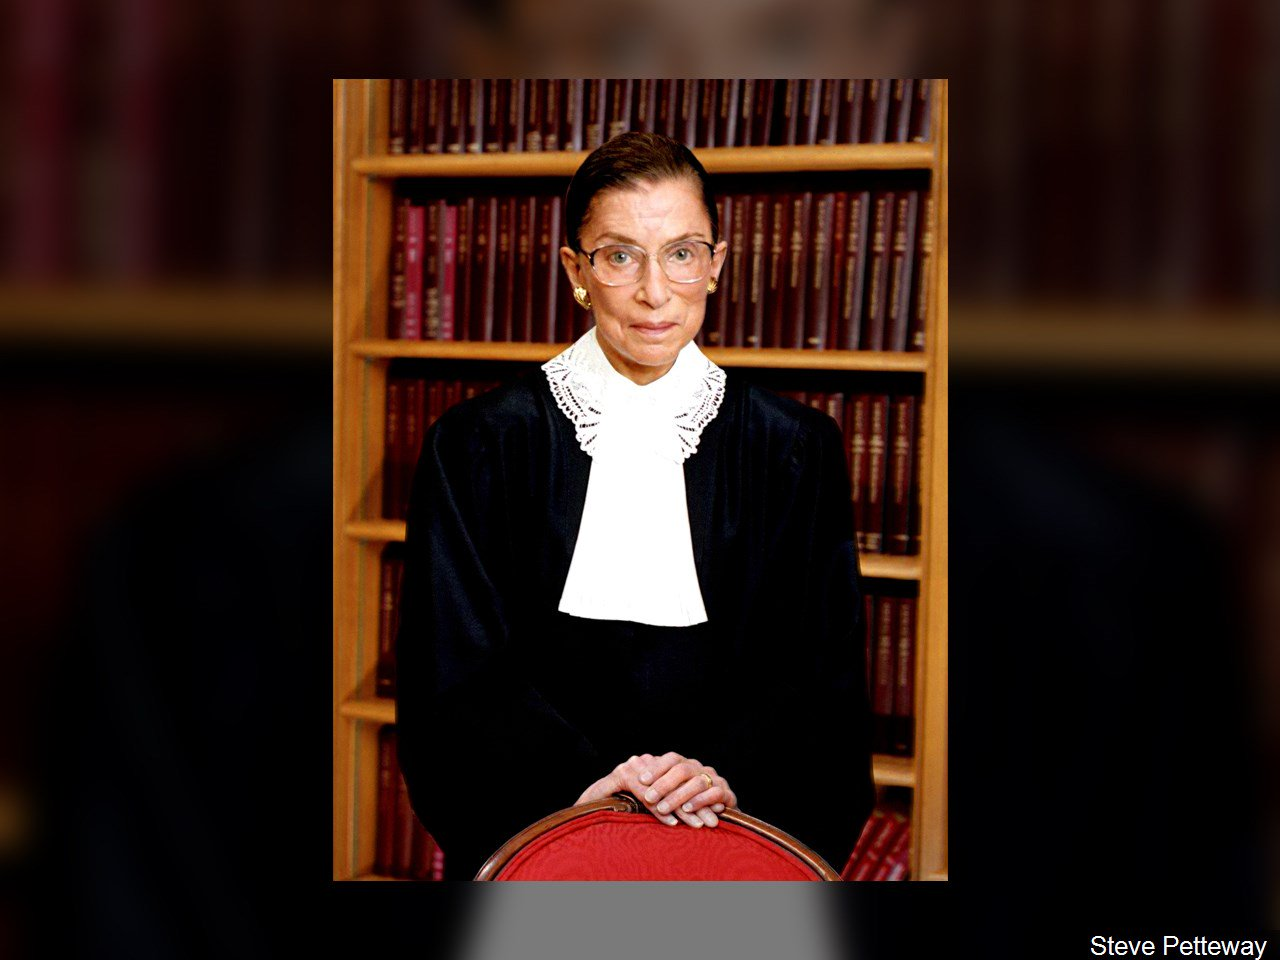 Happy Birthday to Supreme Court Justice Ruth Bader Ginsburg who is 86 today.